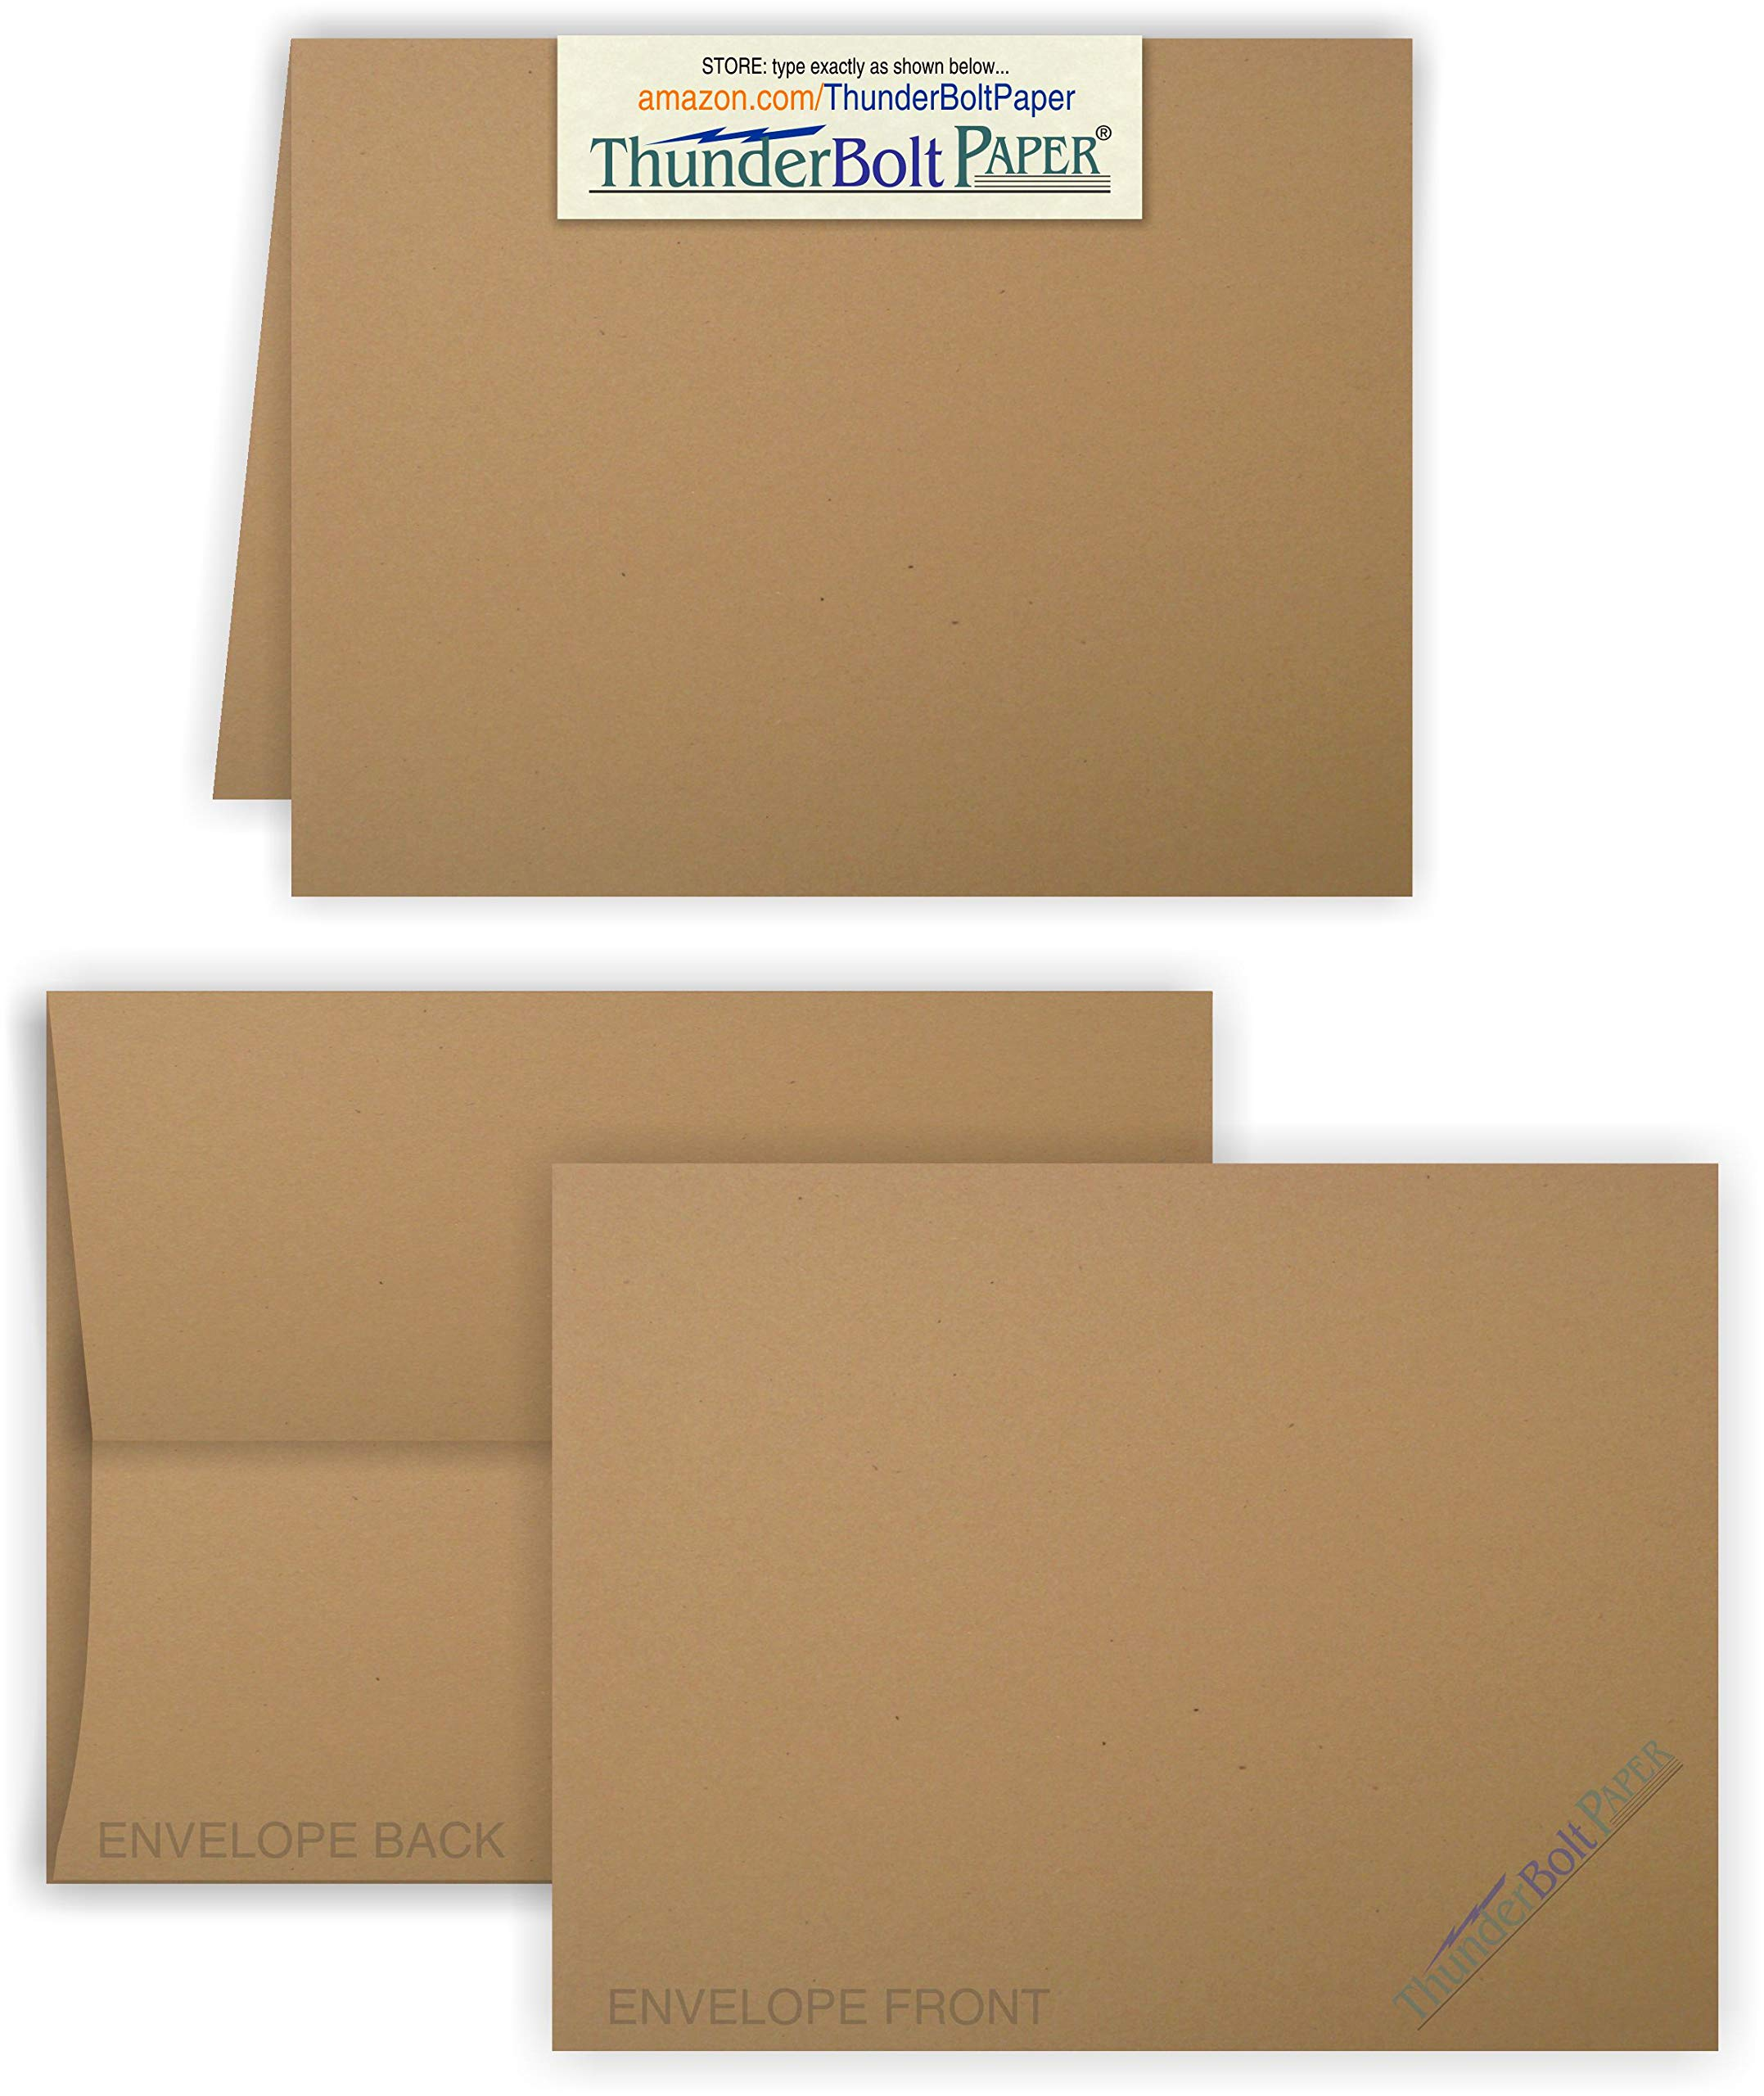 5X7 Folded Size with A-7 Envelopes -Brown Kraft Fiber - 50 Sets (7X10 Cards Scored to Fold in Half) Blank Pack -Invitations, Greeting, Thank Yous, Notes, Holidays, Weddings, Birthdays -80# Cardstock by ThunderBolt Paper